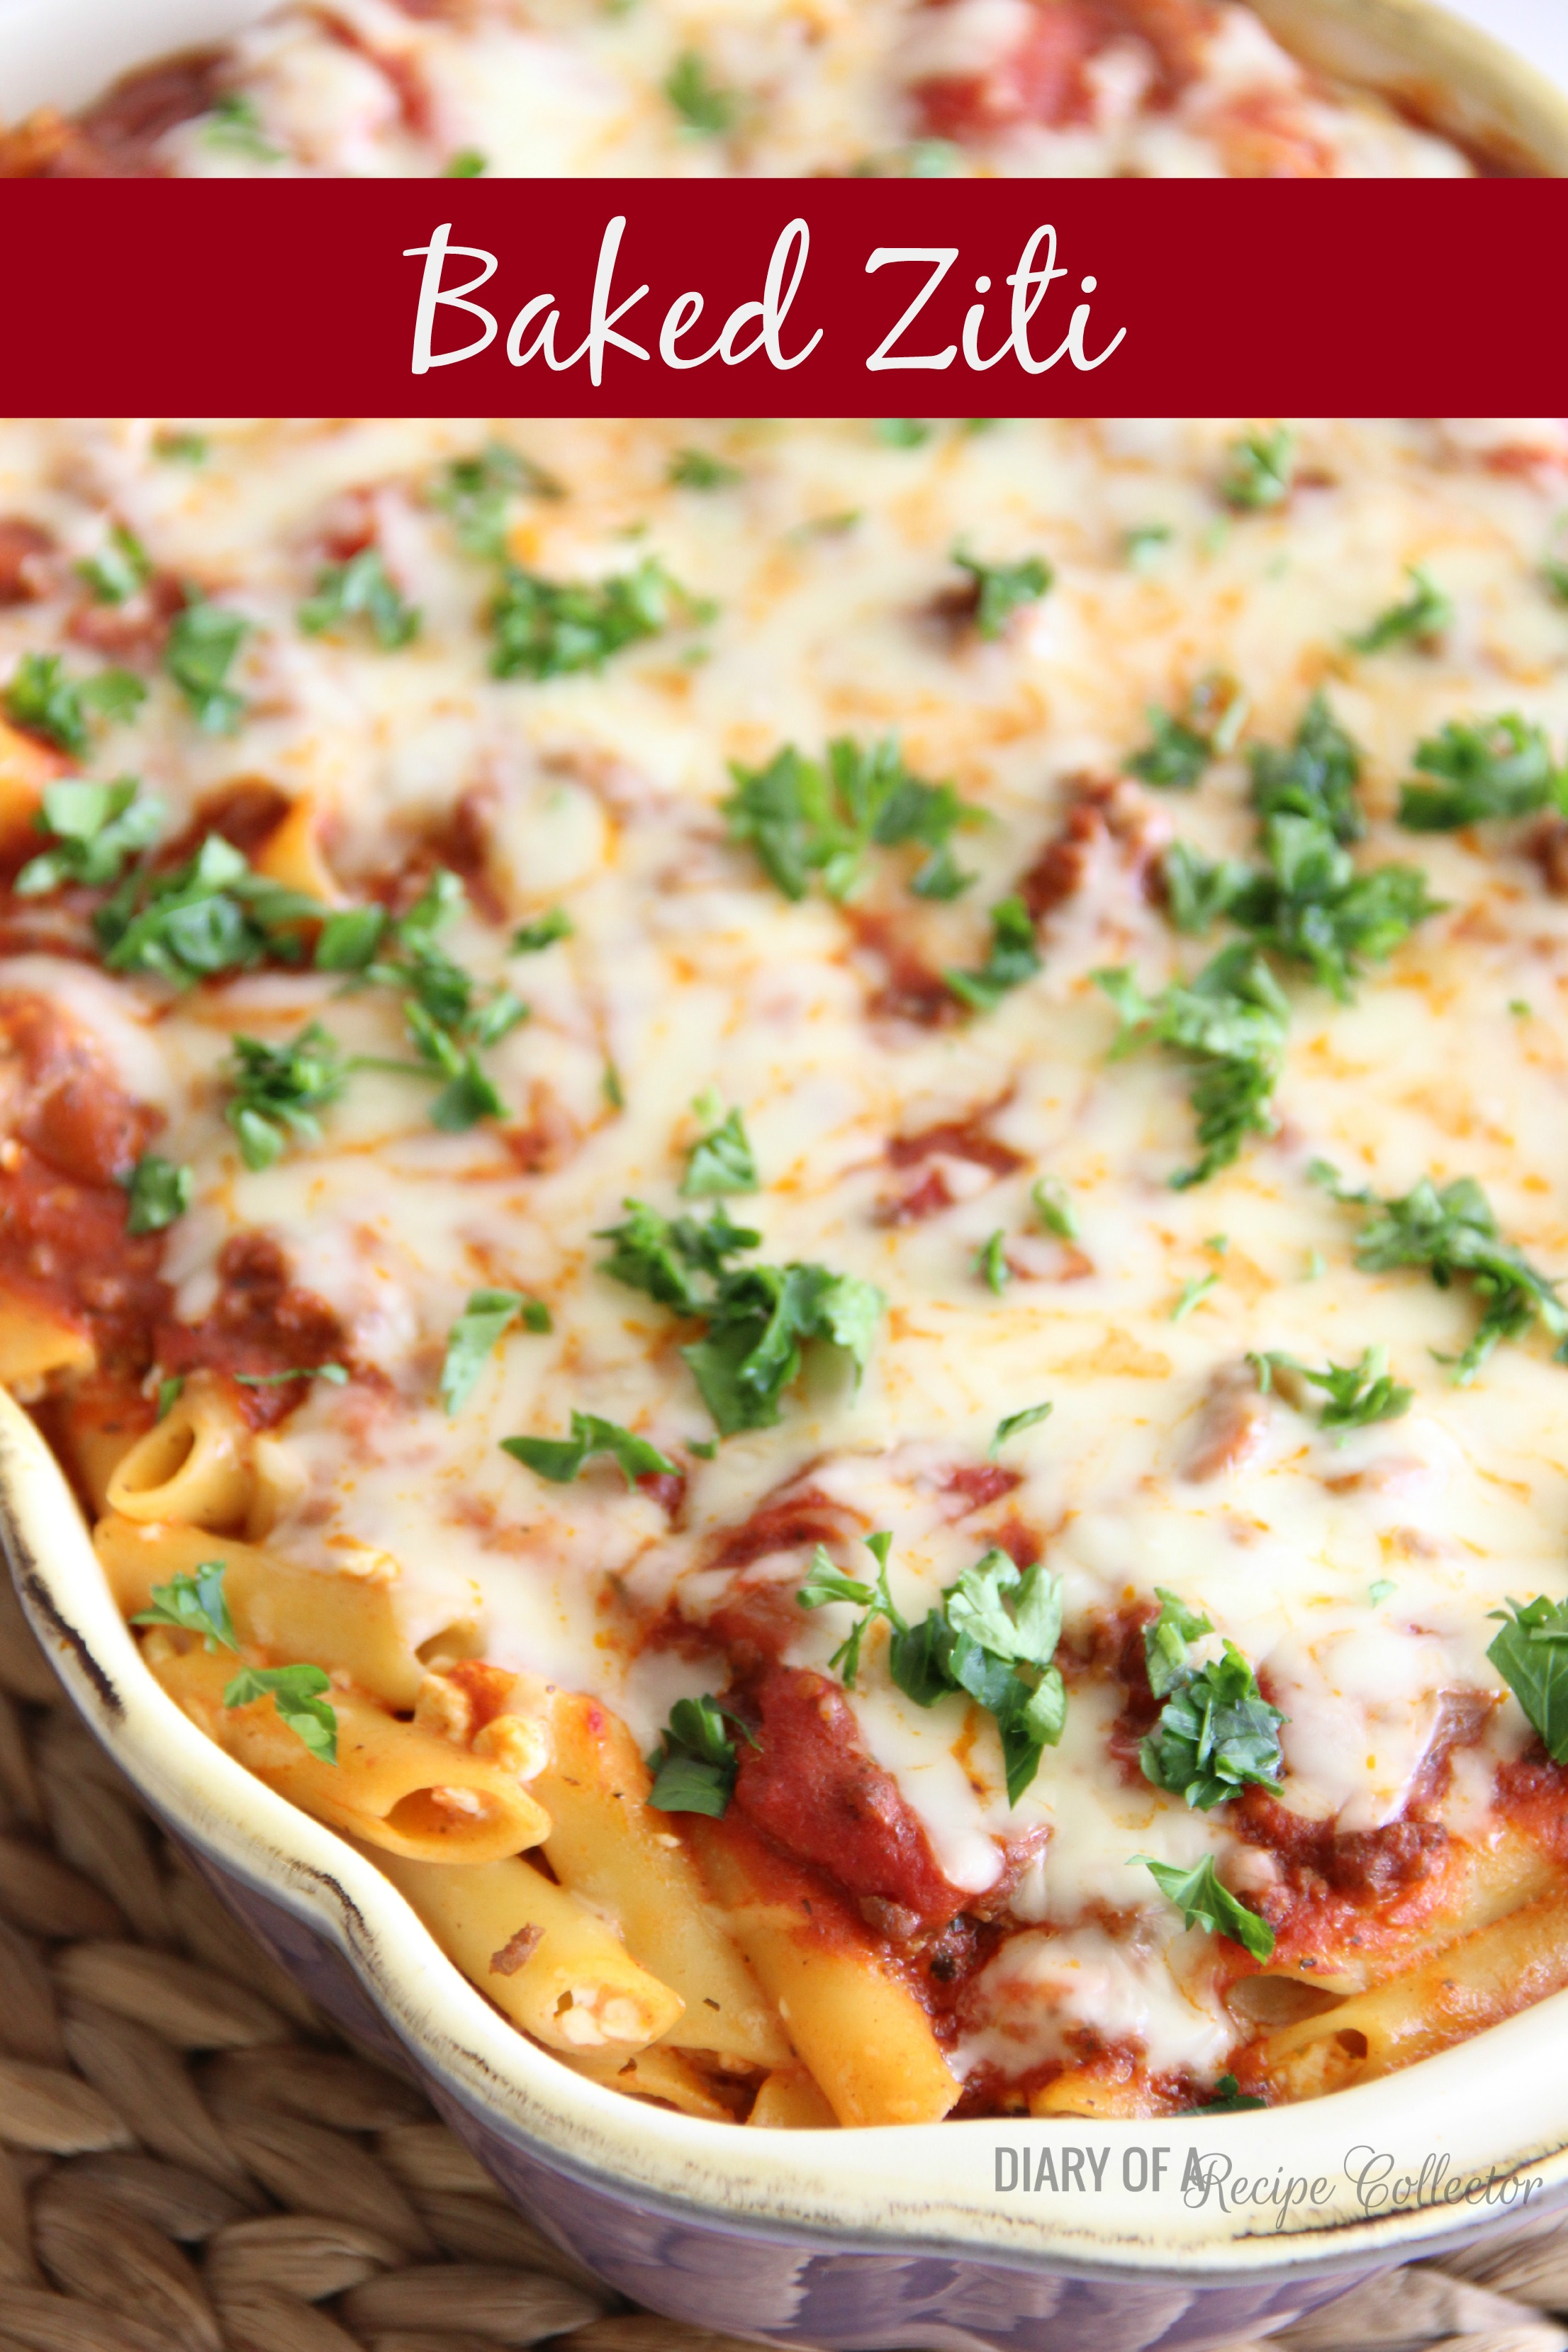 Baked Ziti - Diary of A Recipe Collector